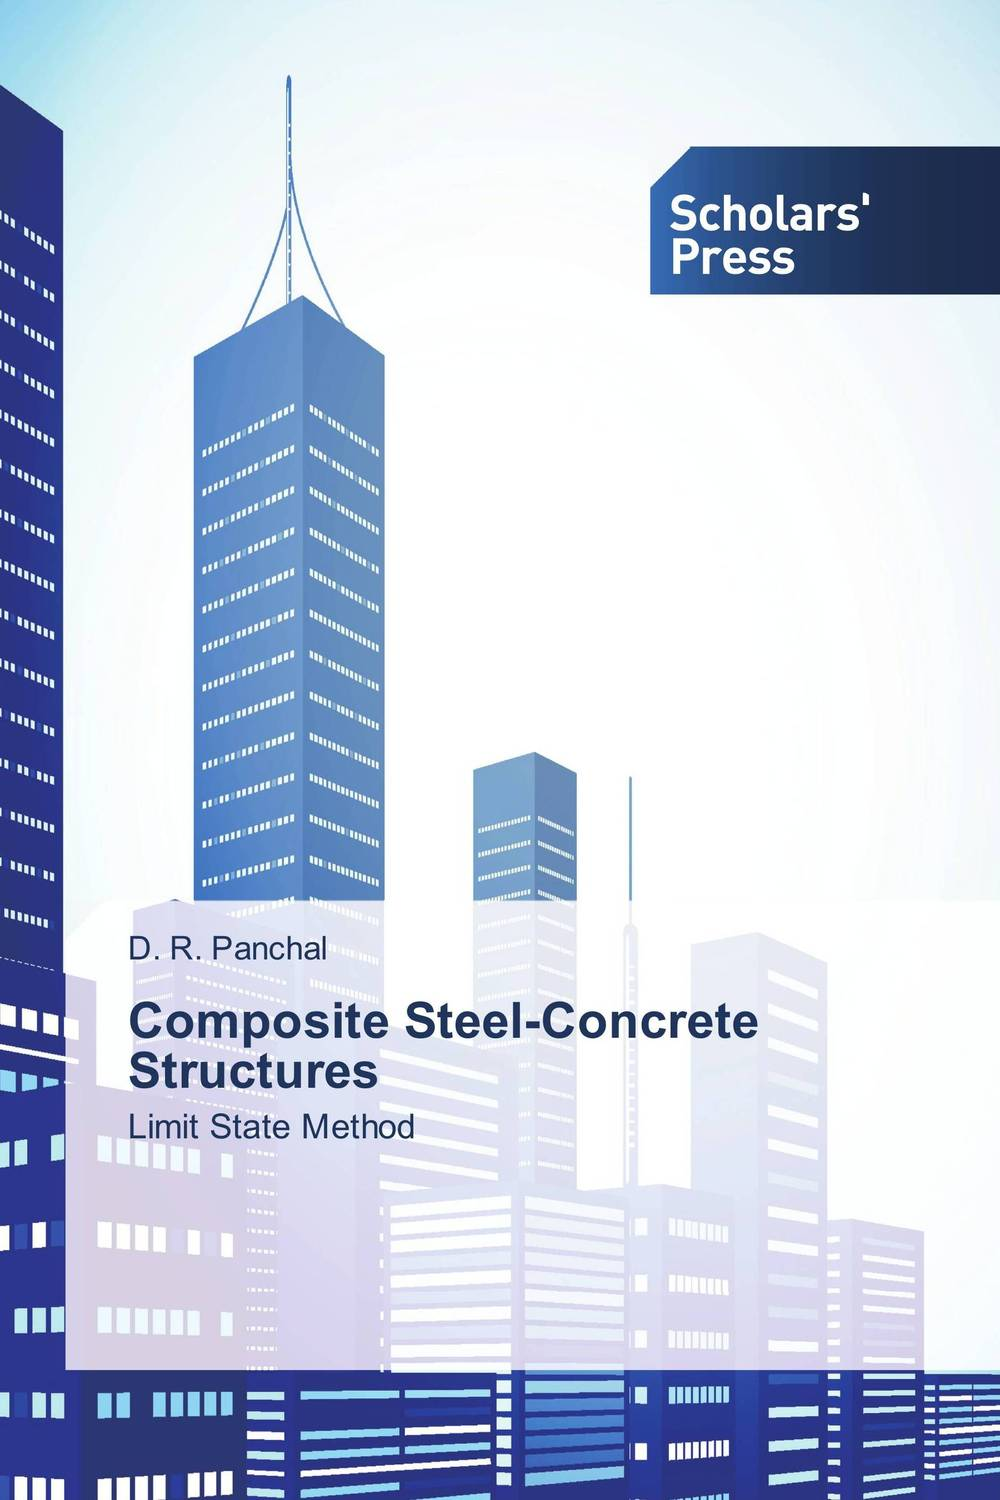 Composite Steel-Concrete Structures composite structures design safety and innovation